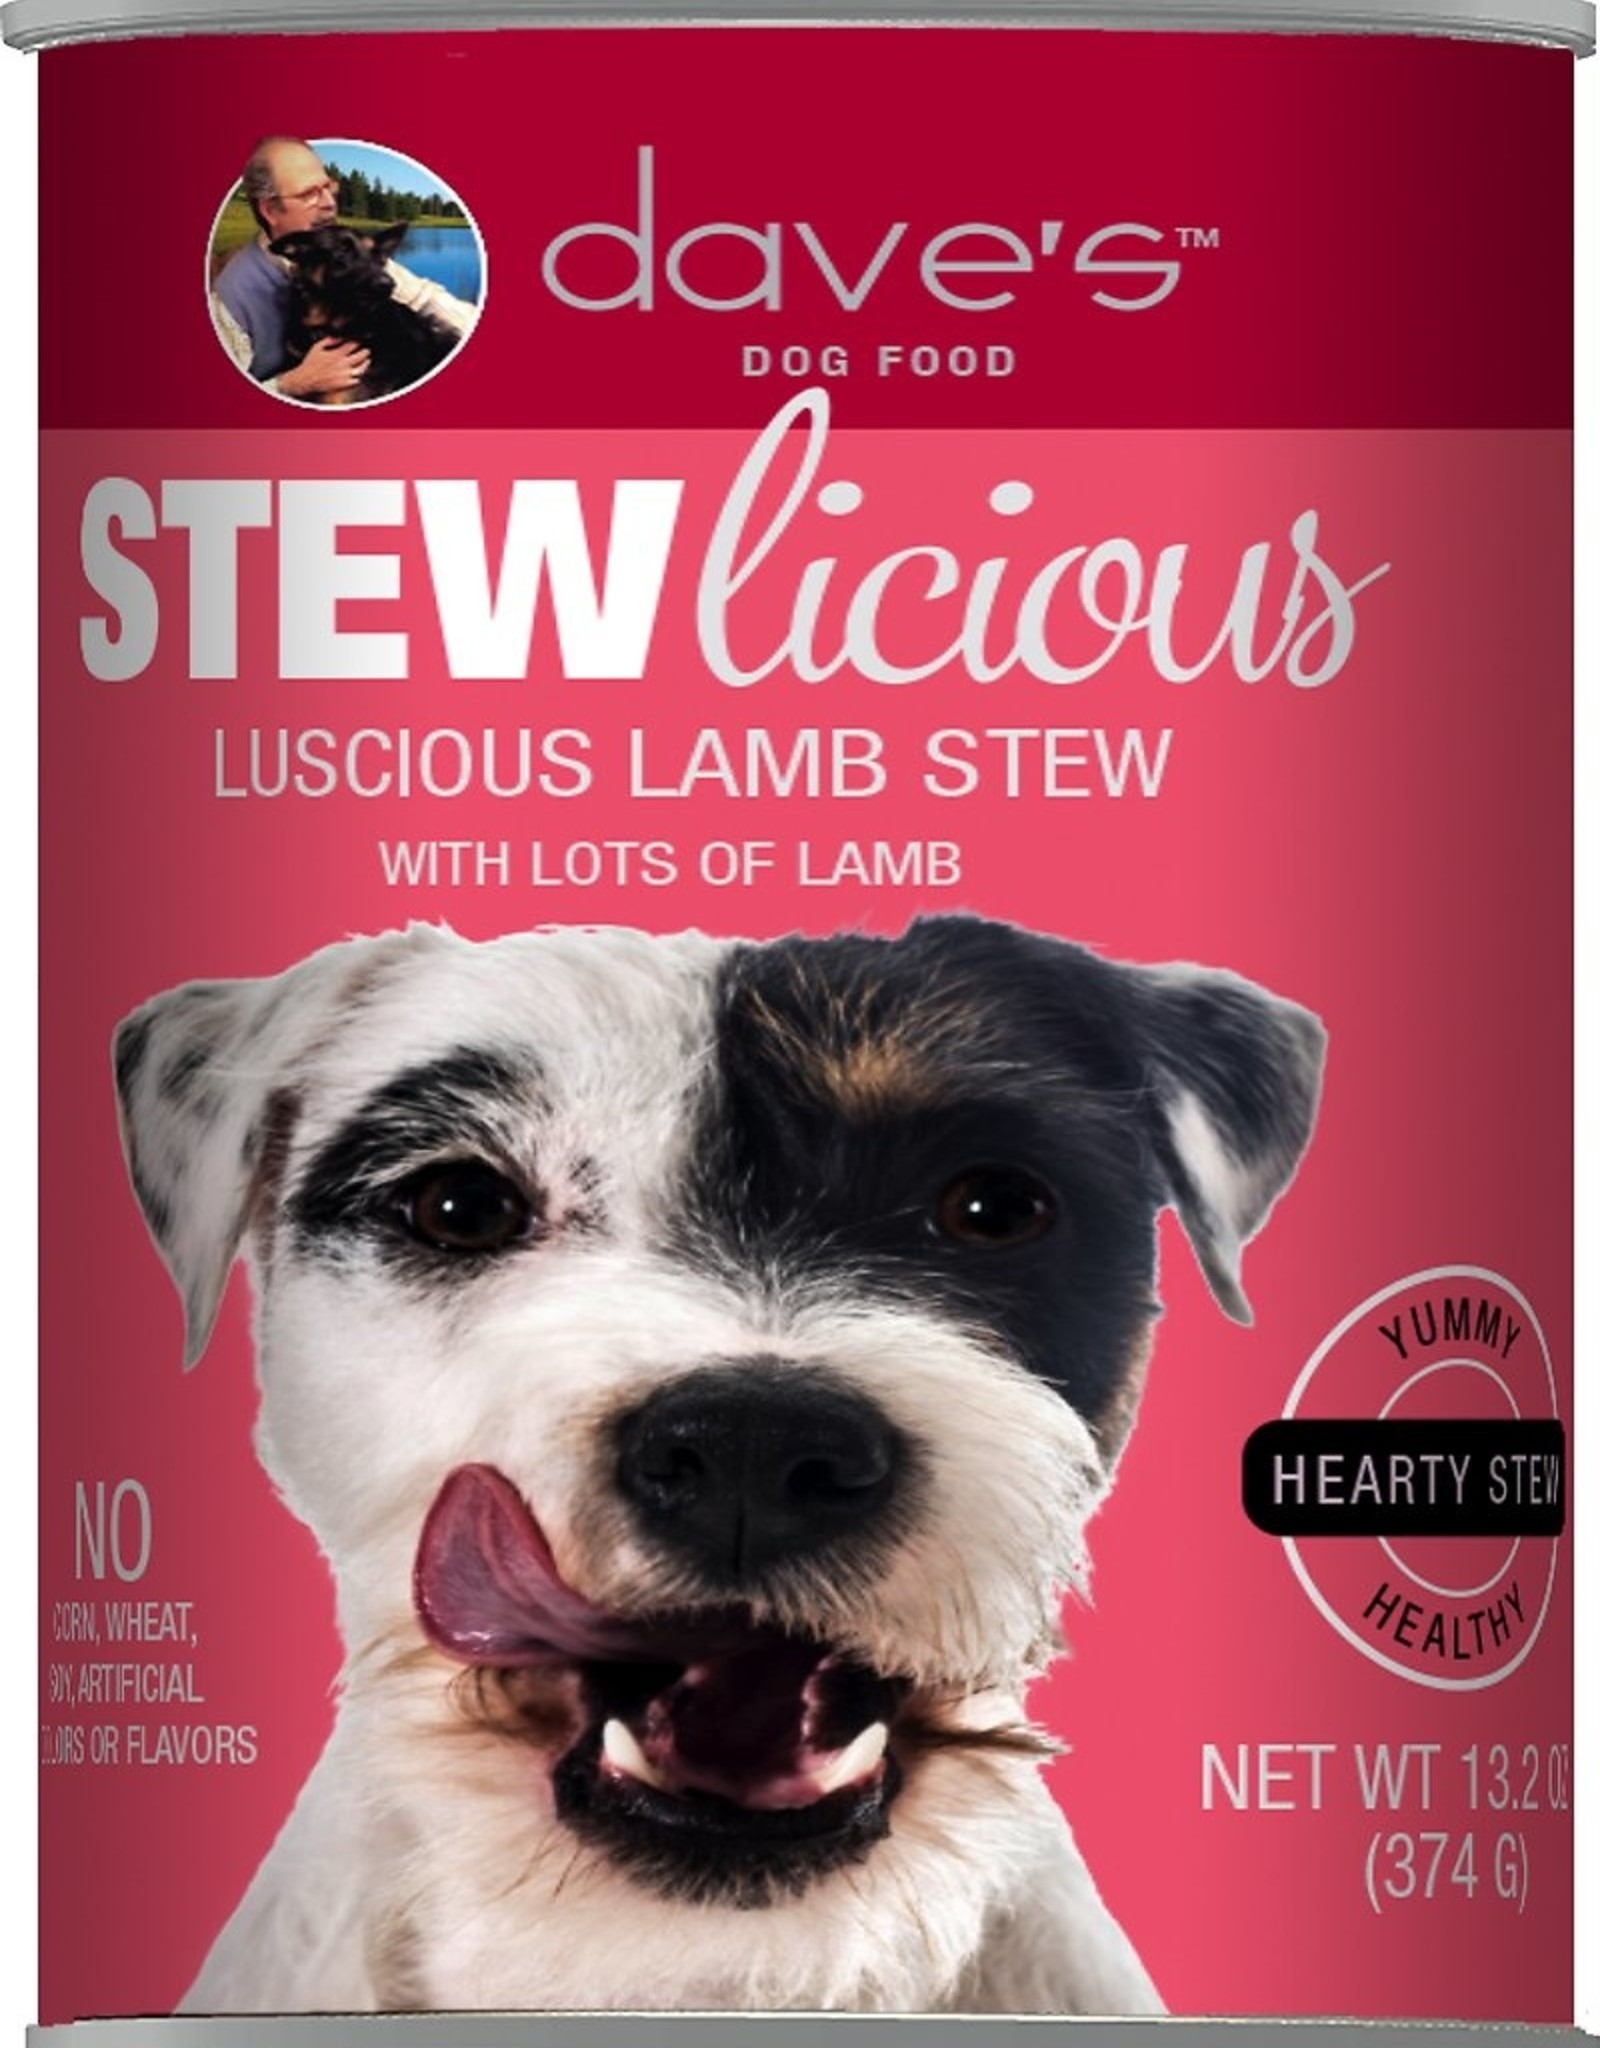 Daves Pet Food Dog Luscious Lamb Stew - Grain-Free 13oz